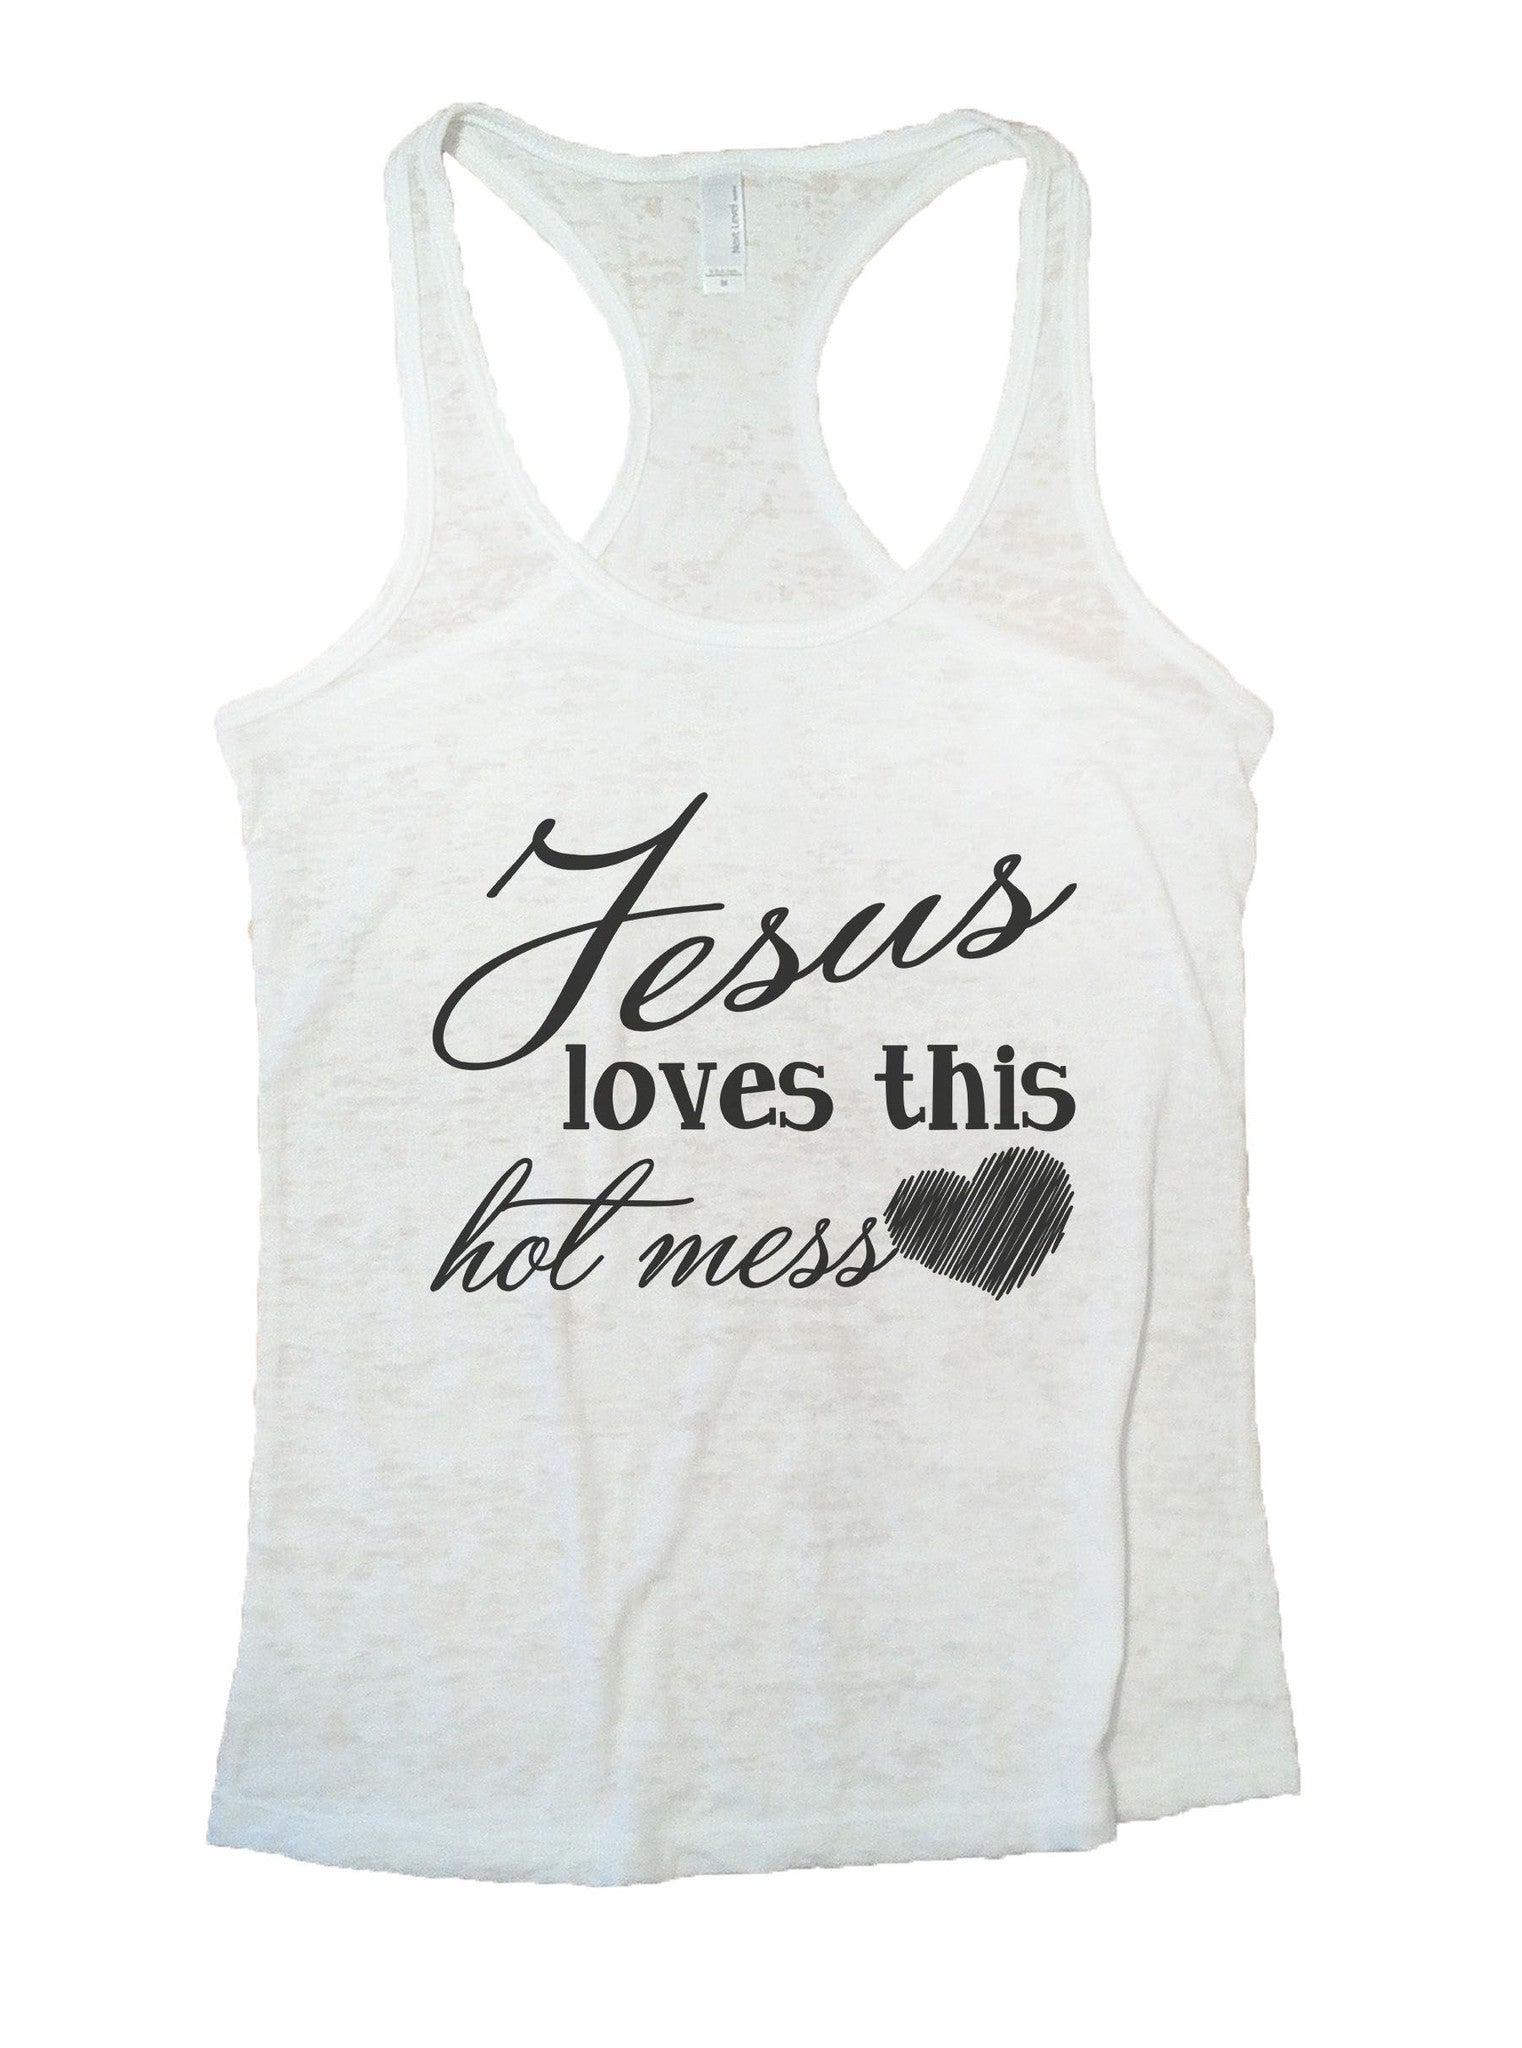 Jesus Loves This Hot Mess Burnout Tank Top By BurnoutTankTops.com - 891 - Funny Shirts Tank Tops Burnouts and Triblends  - 5